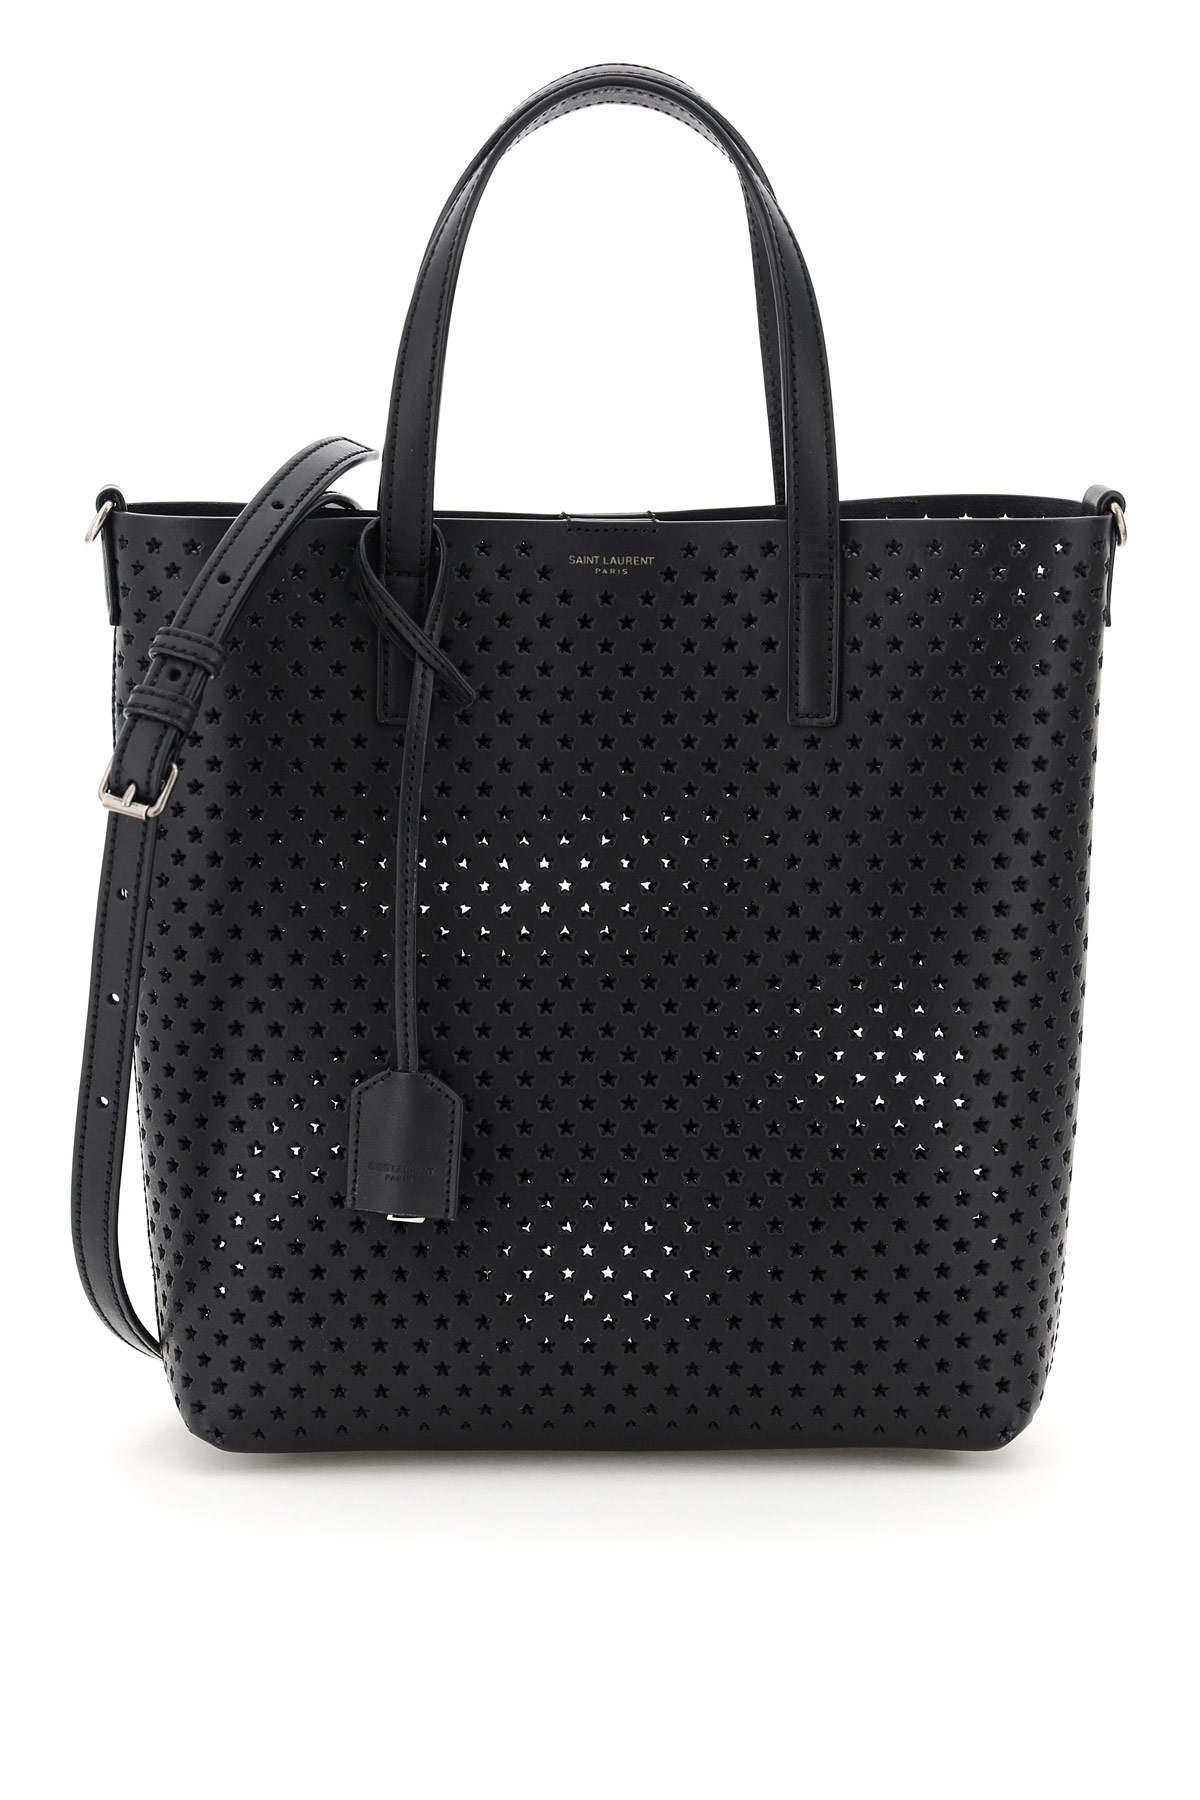 SAINT LAURENT TOY NORTH / SOUTH PERFORATED LEATHER SHOPPING BAG OS Black Leather